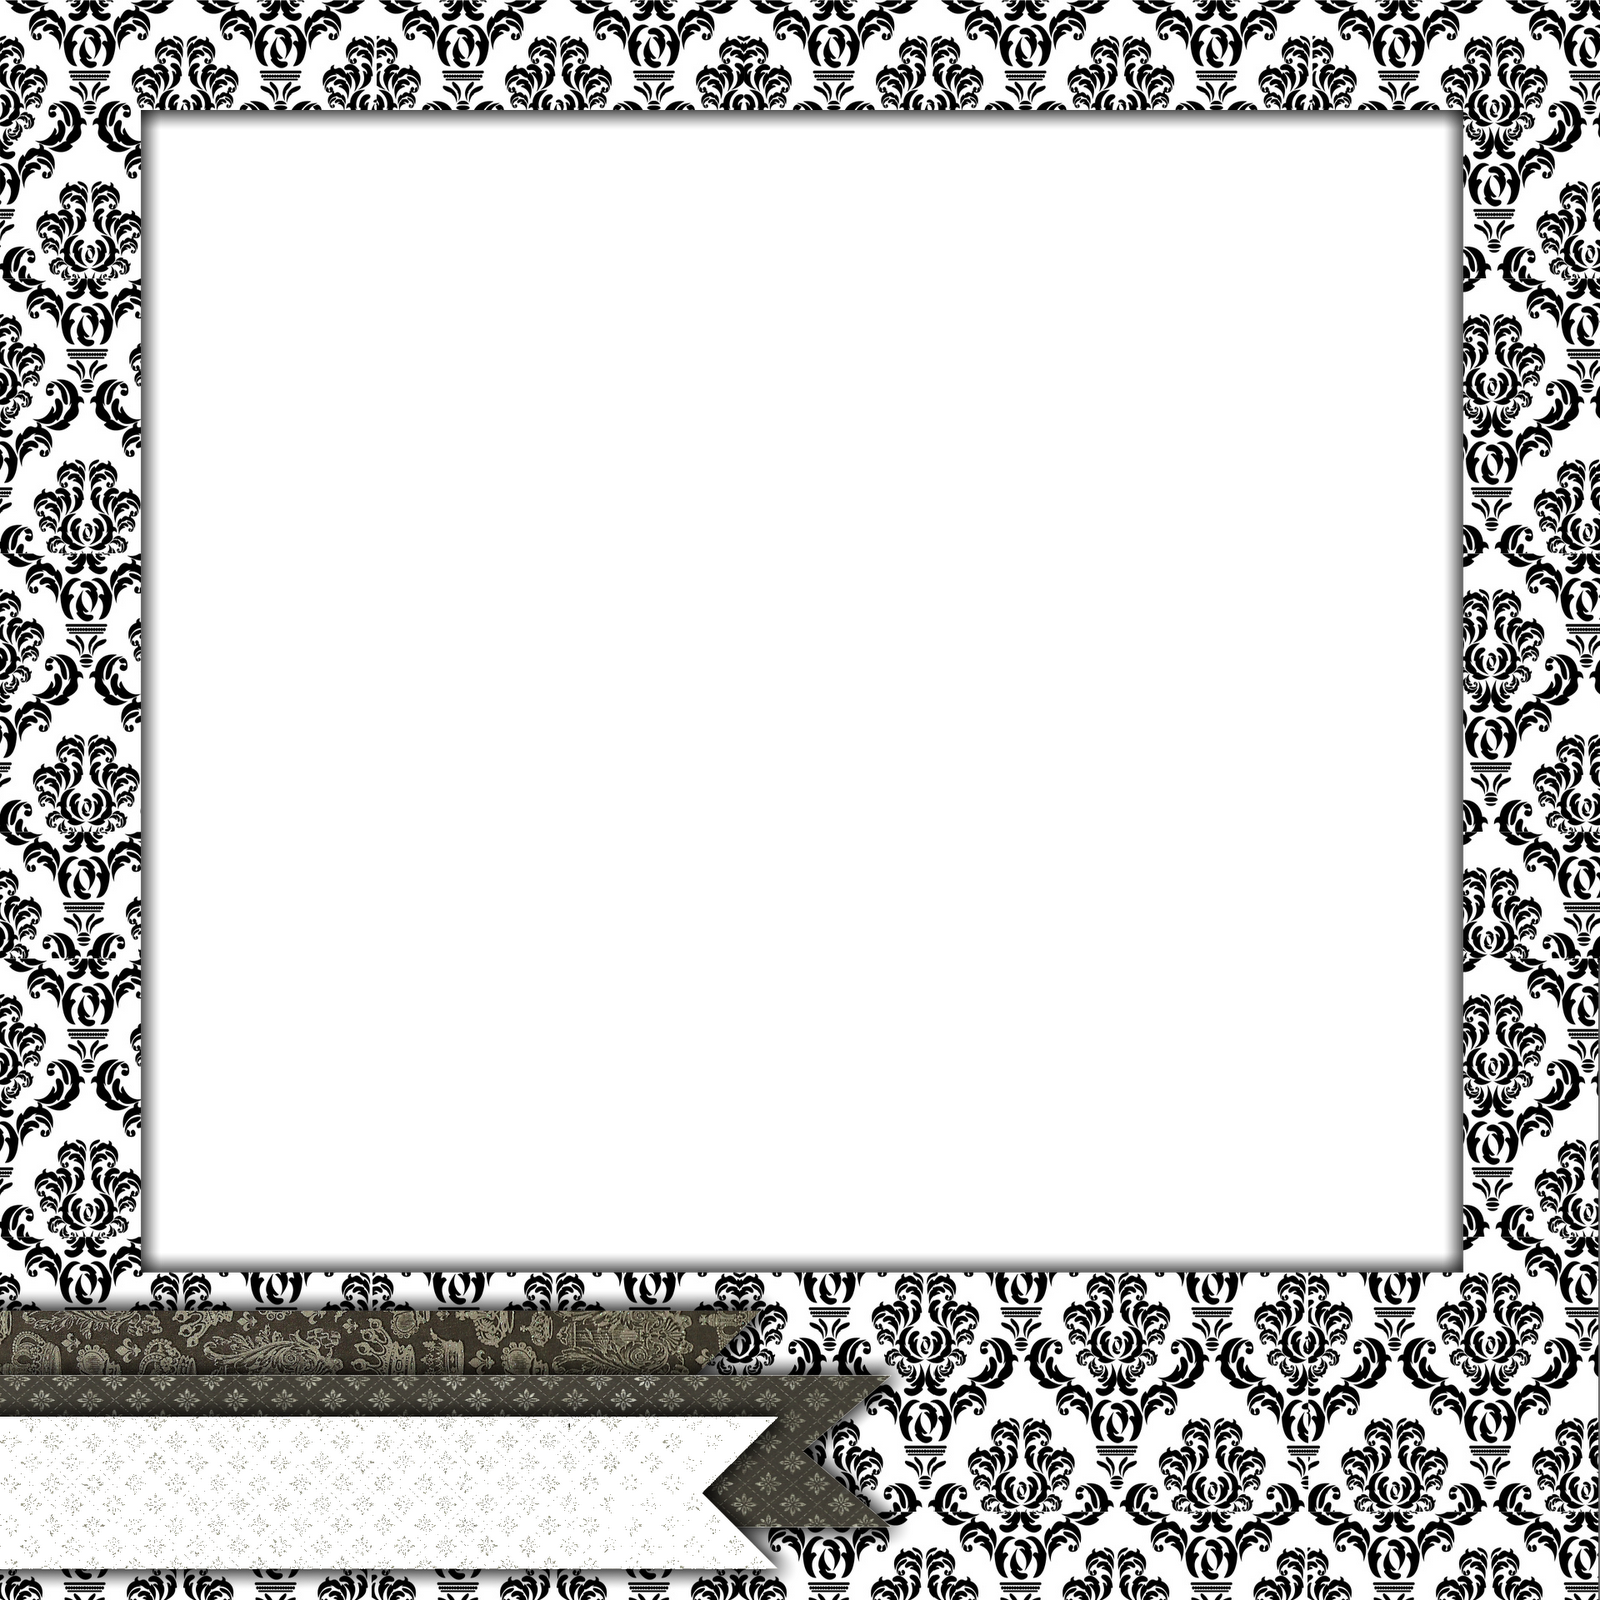 Black And White Damasks Free Printable Toppers Labels Oh My Origamidragondiagram021png 512x512 Best Origami Pinterest Publicado